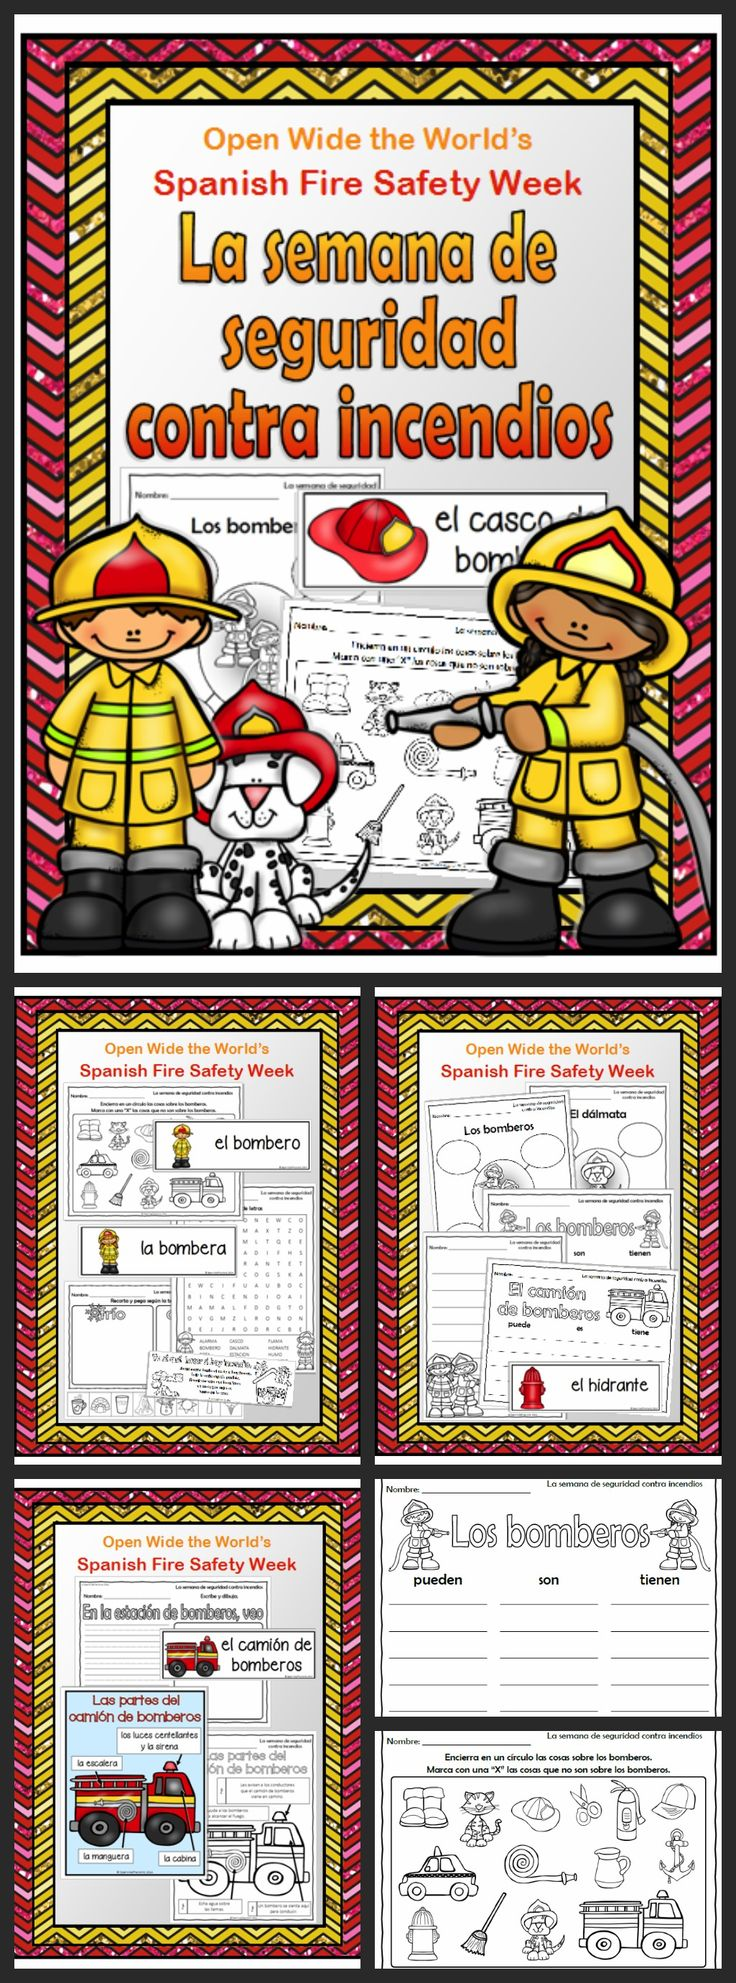 Fire safety essay in english